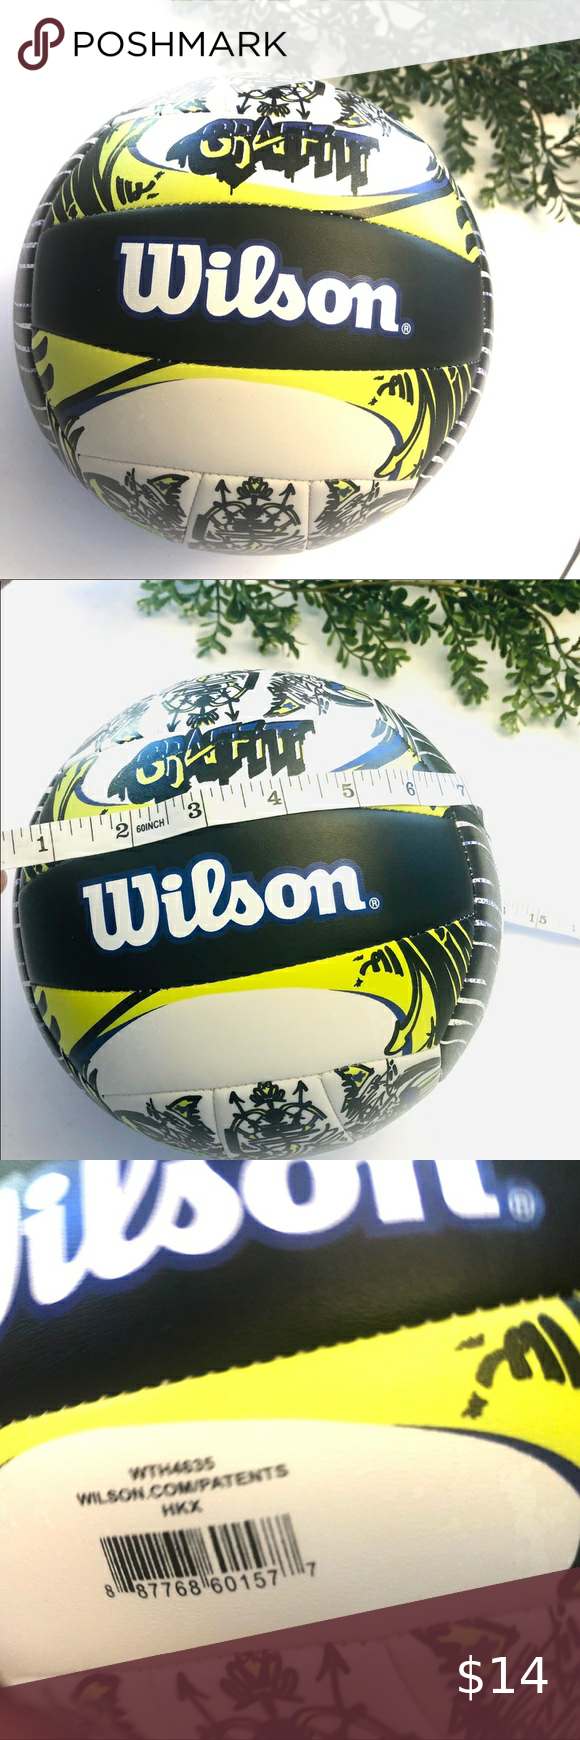 Wilson Graffiti Youth Volleyball Yellow White In 2020 Youth Volleyball Kids Shop Clothes Design